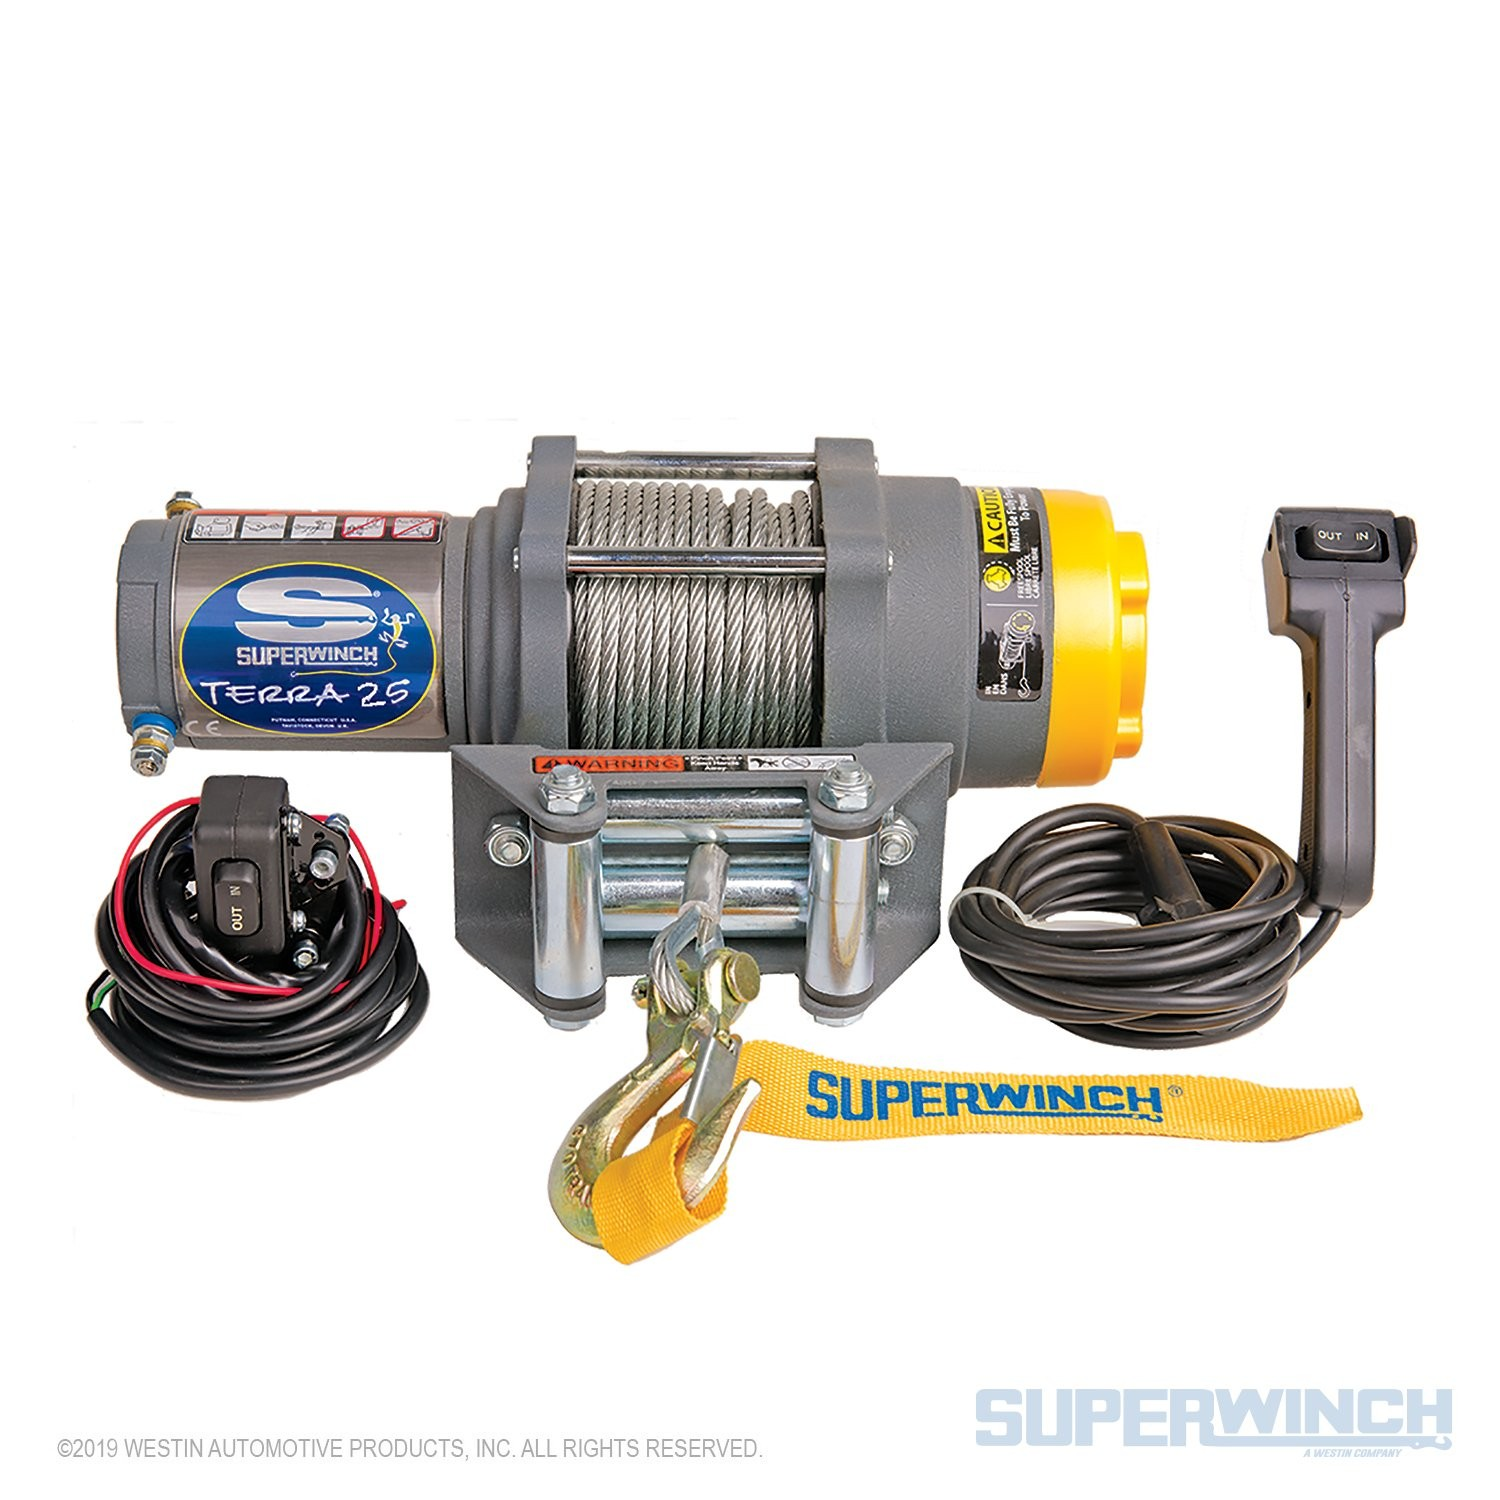 Atv Superwinch solenoid Diagram Superwinch Terra 25 12v atv Utv Winch Steel Rope Of Atv Superwinch solenoid Diagram